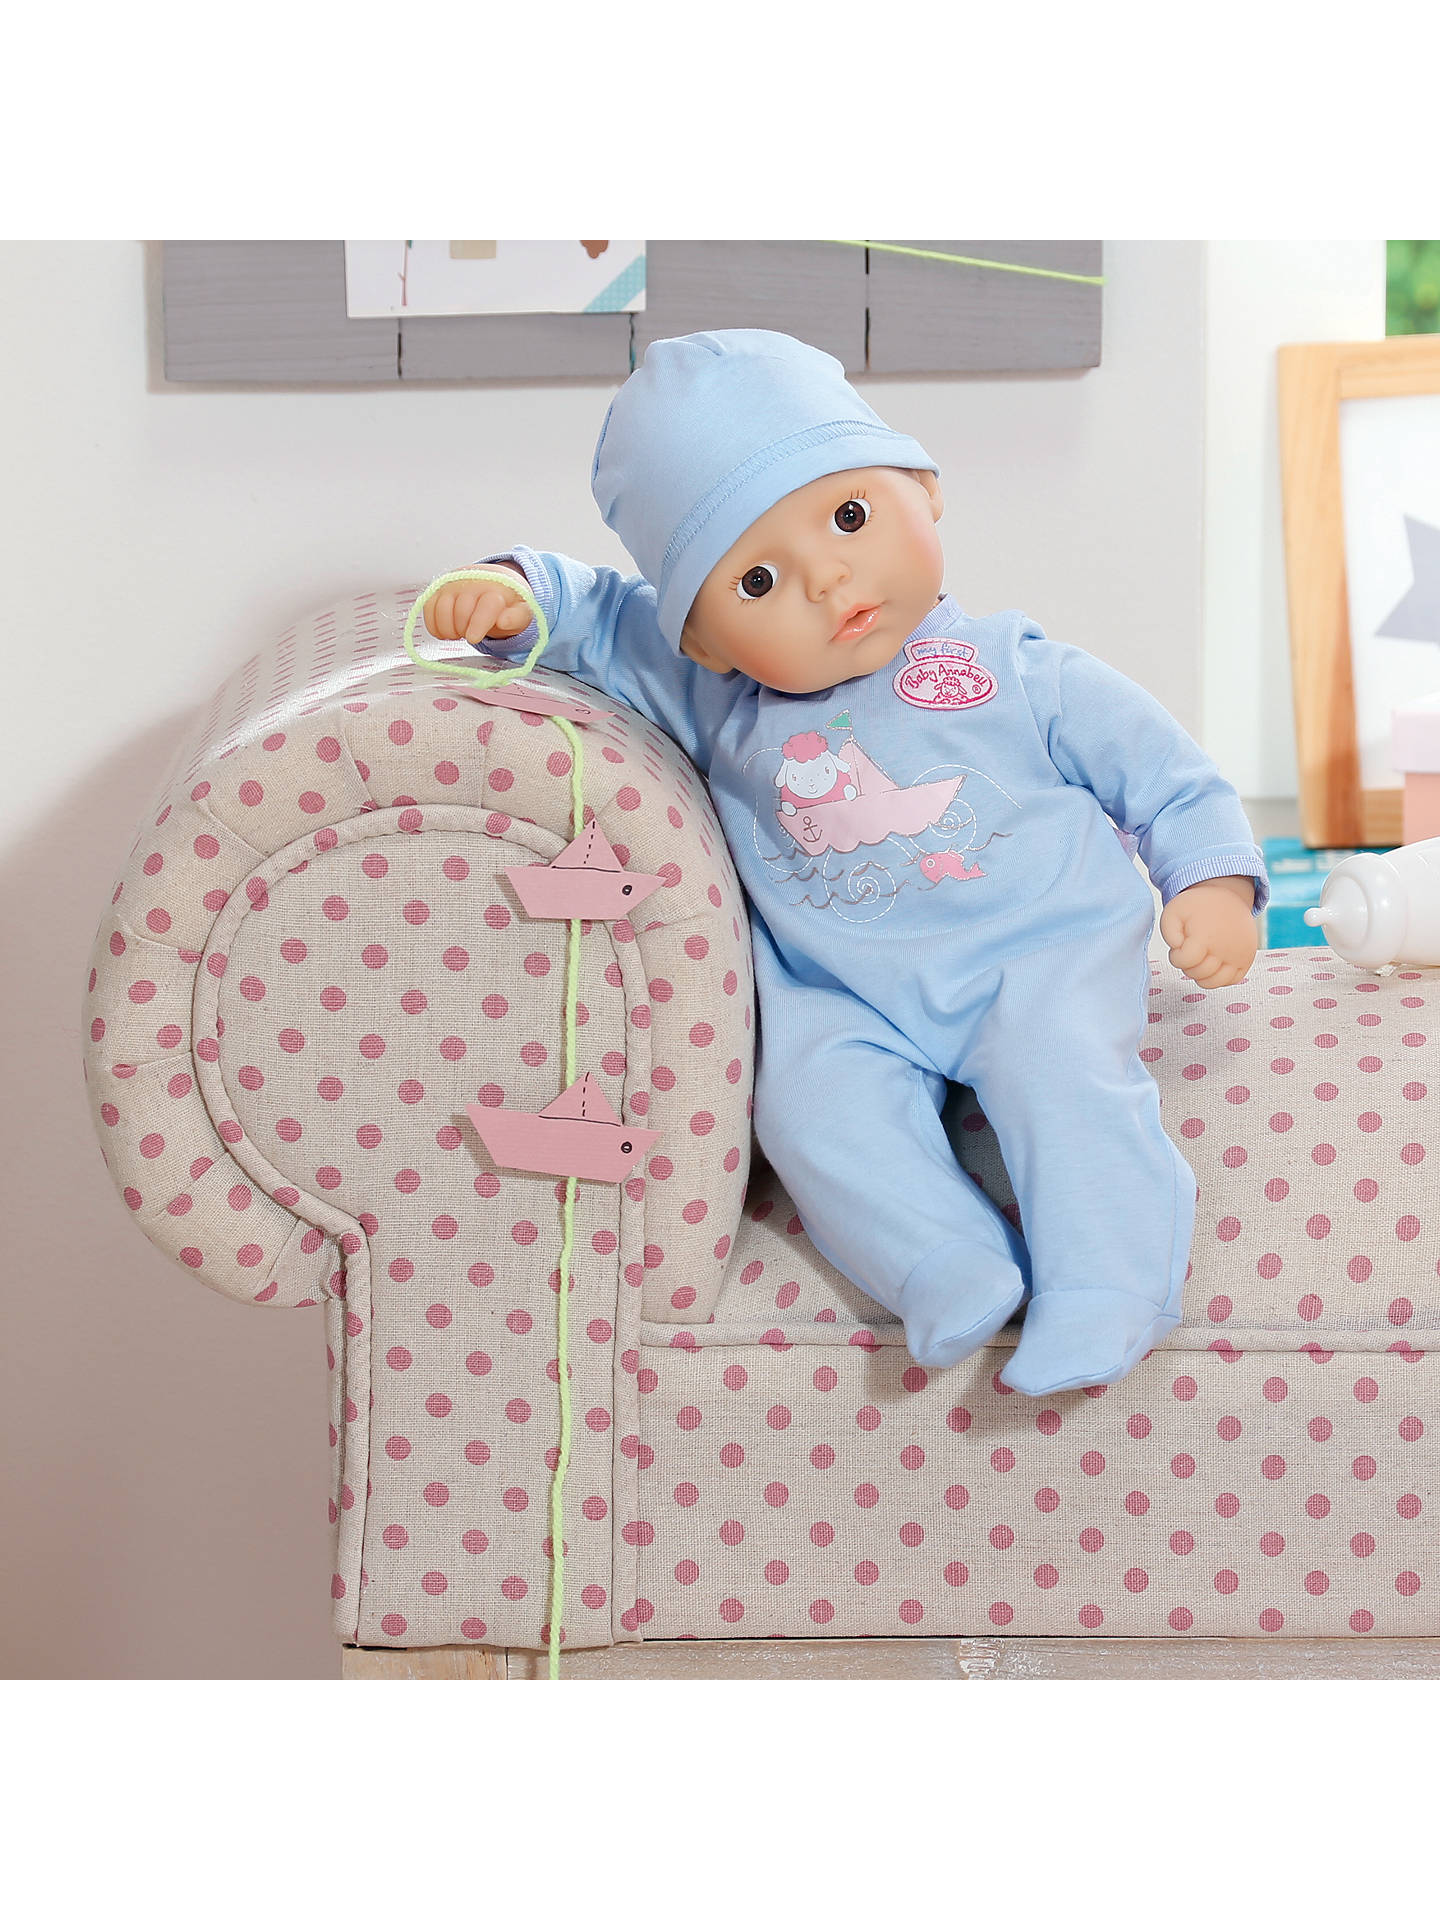 Zapf My First Baby Annabell Brother Doll At John Lewis